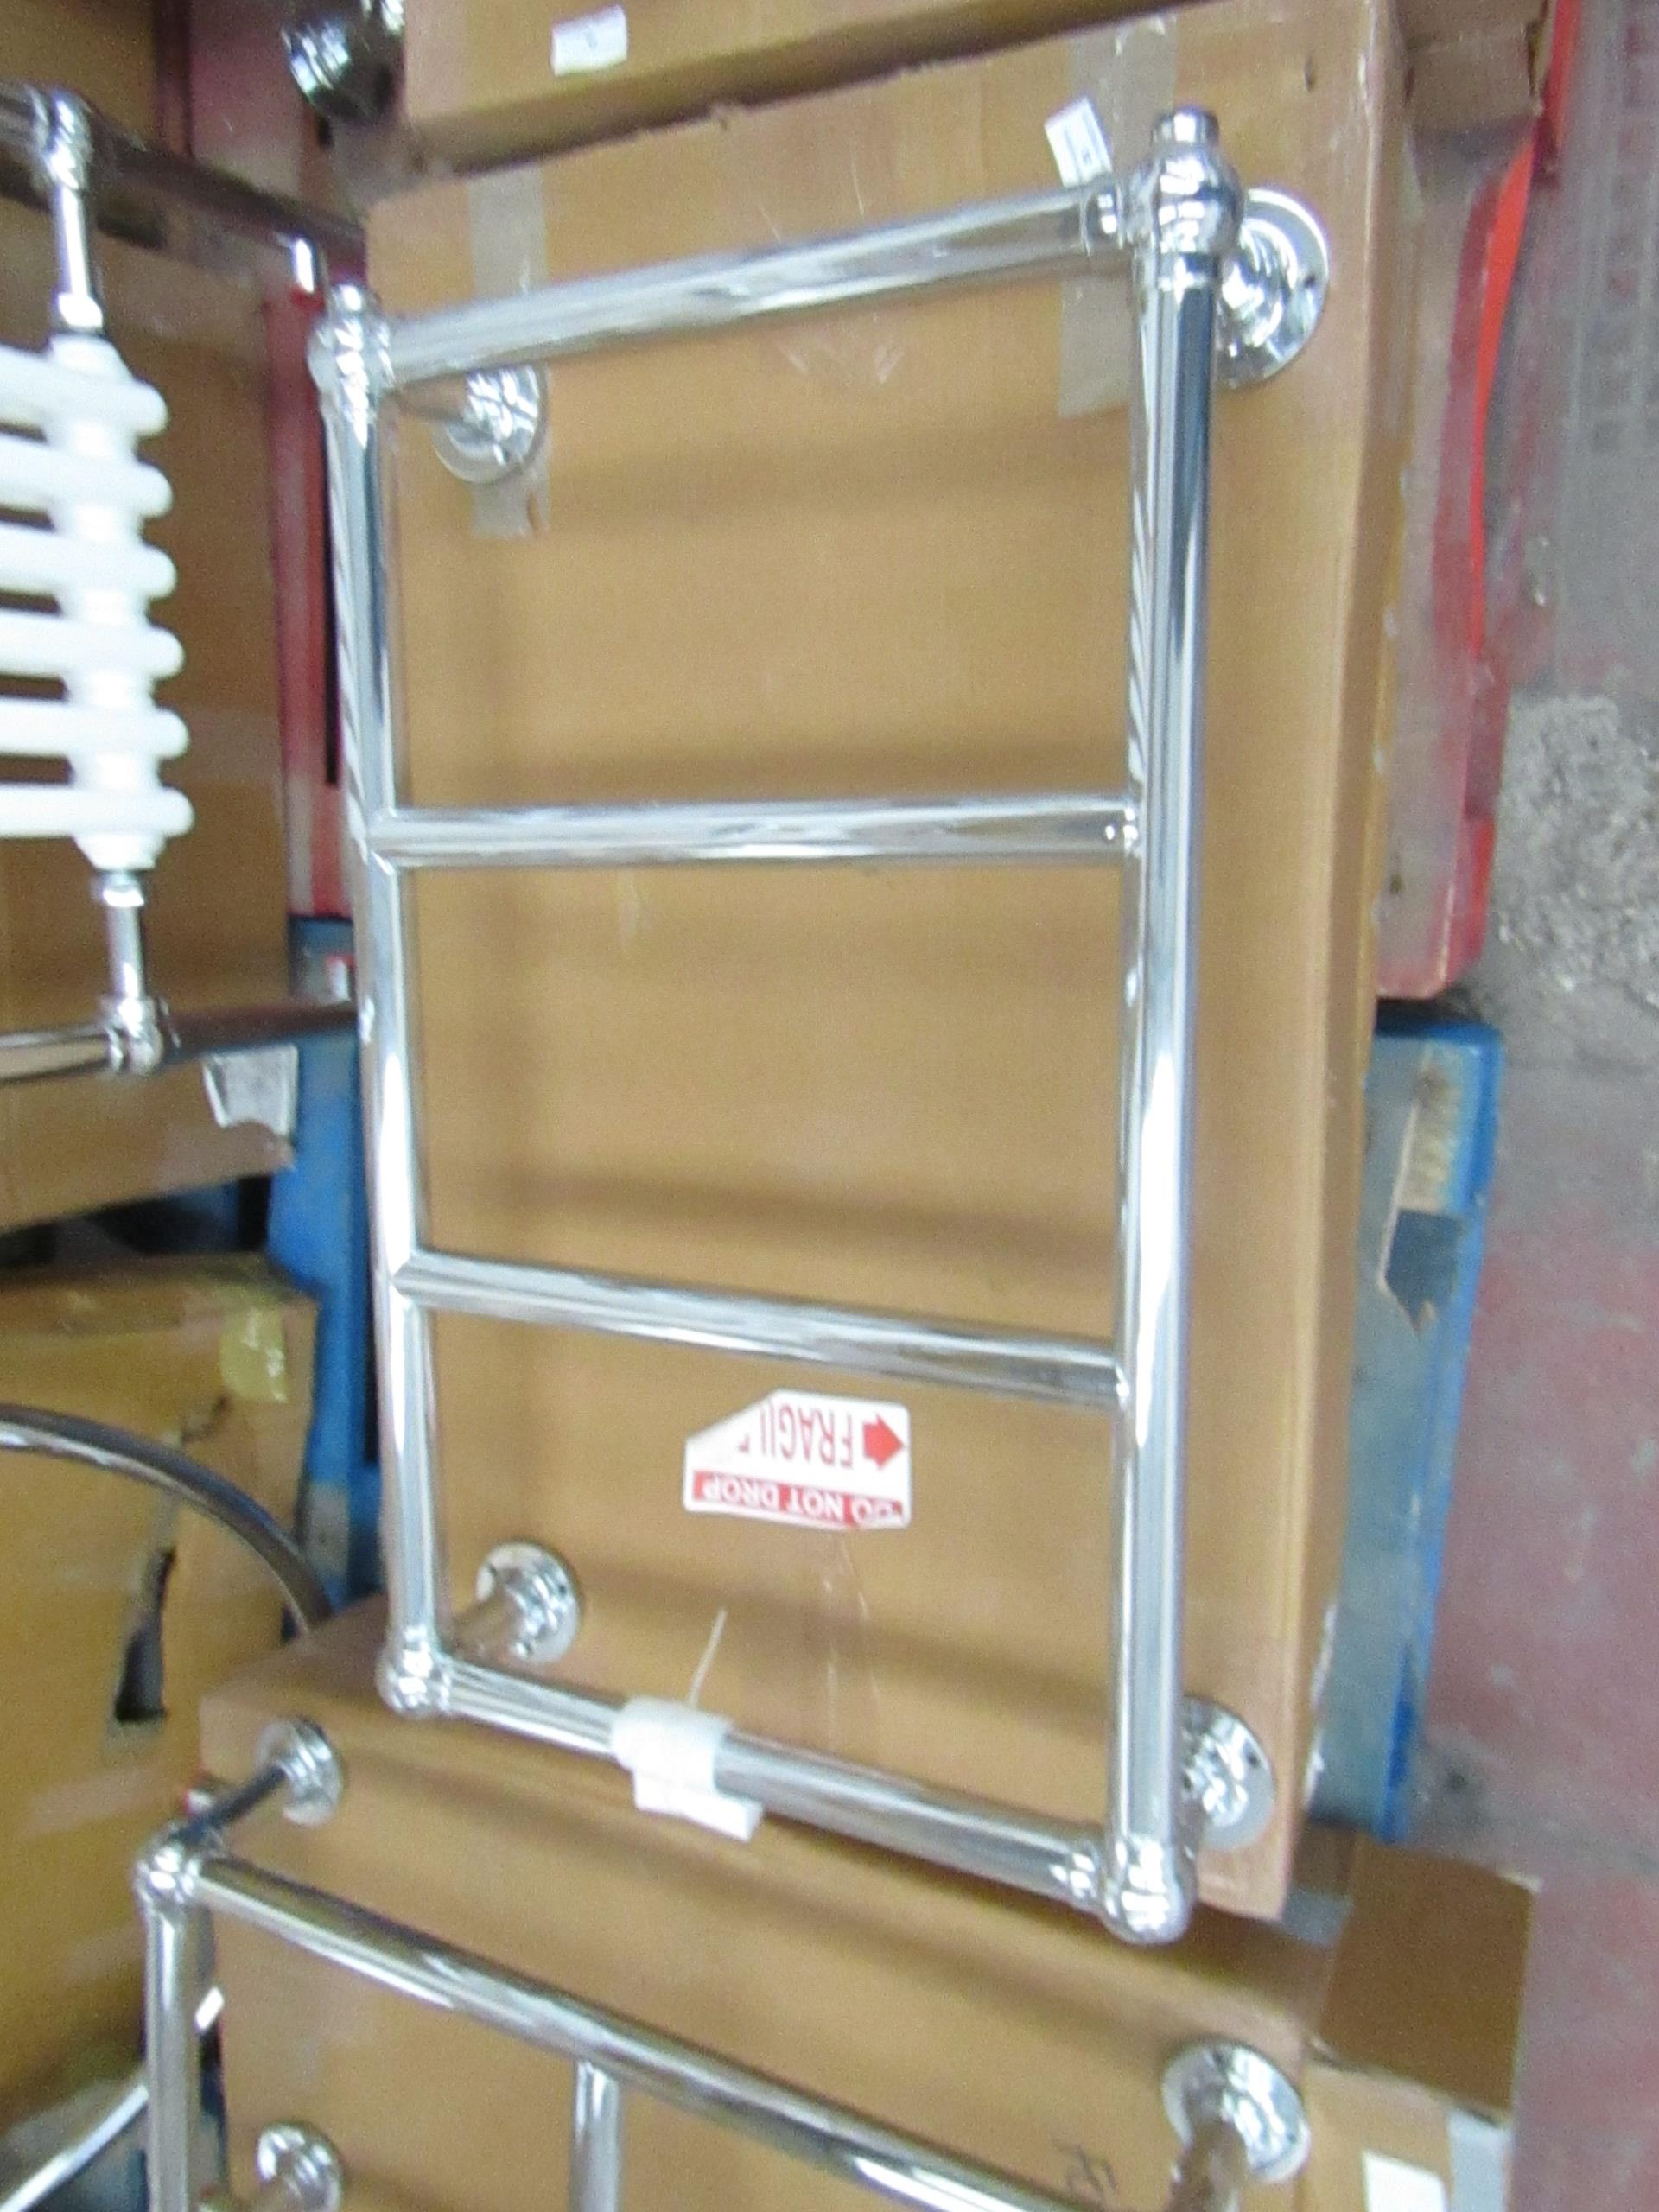 Chrome Astor wall mounter radiator, unchecked and boxed 72 x 44 x 14cm